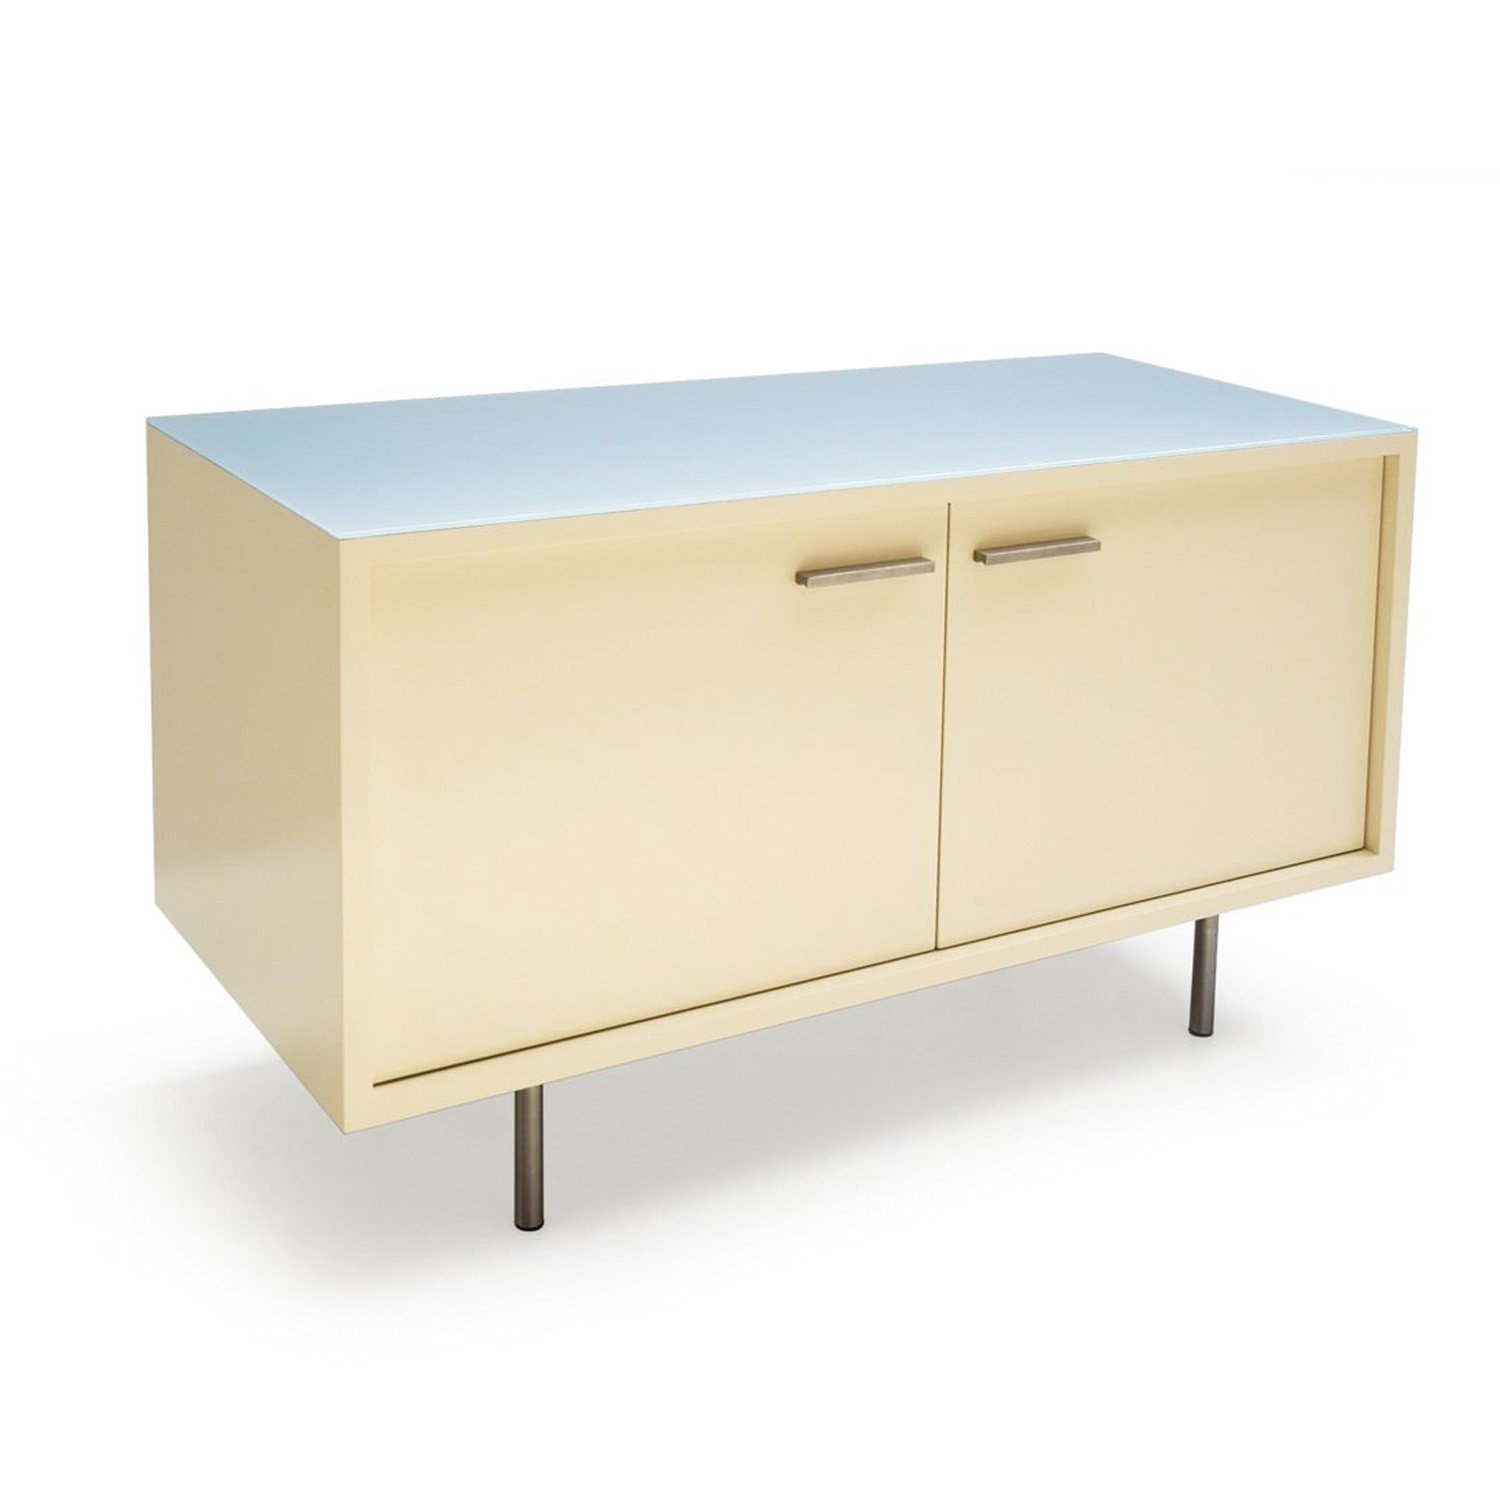 Series 3 Credenza - 2 Door Credenza Unit